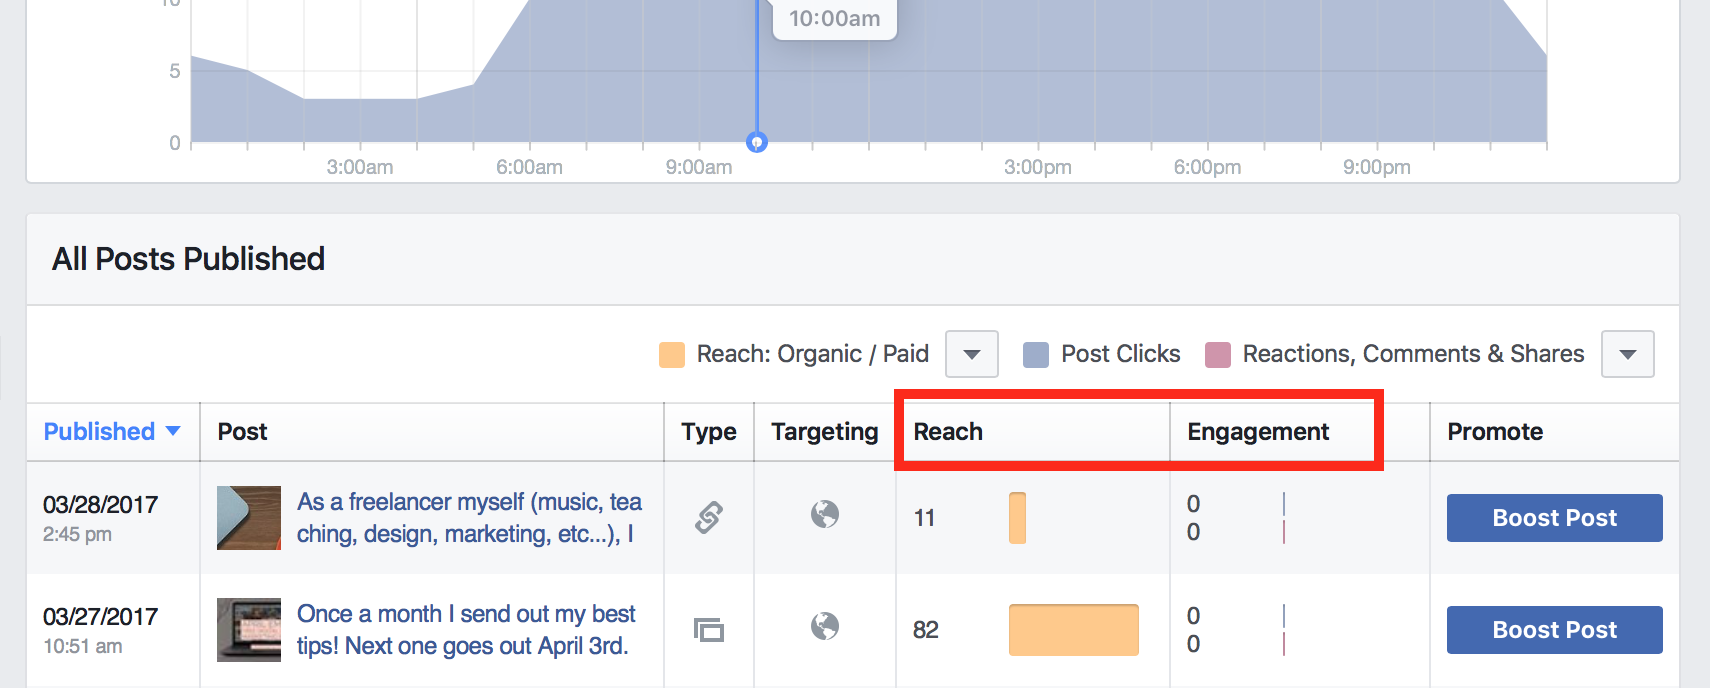 Scroll down the posts insights page to see reach and engagement